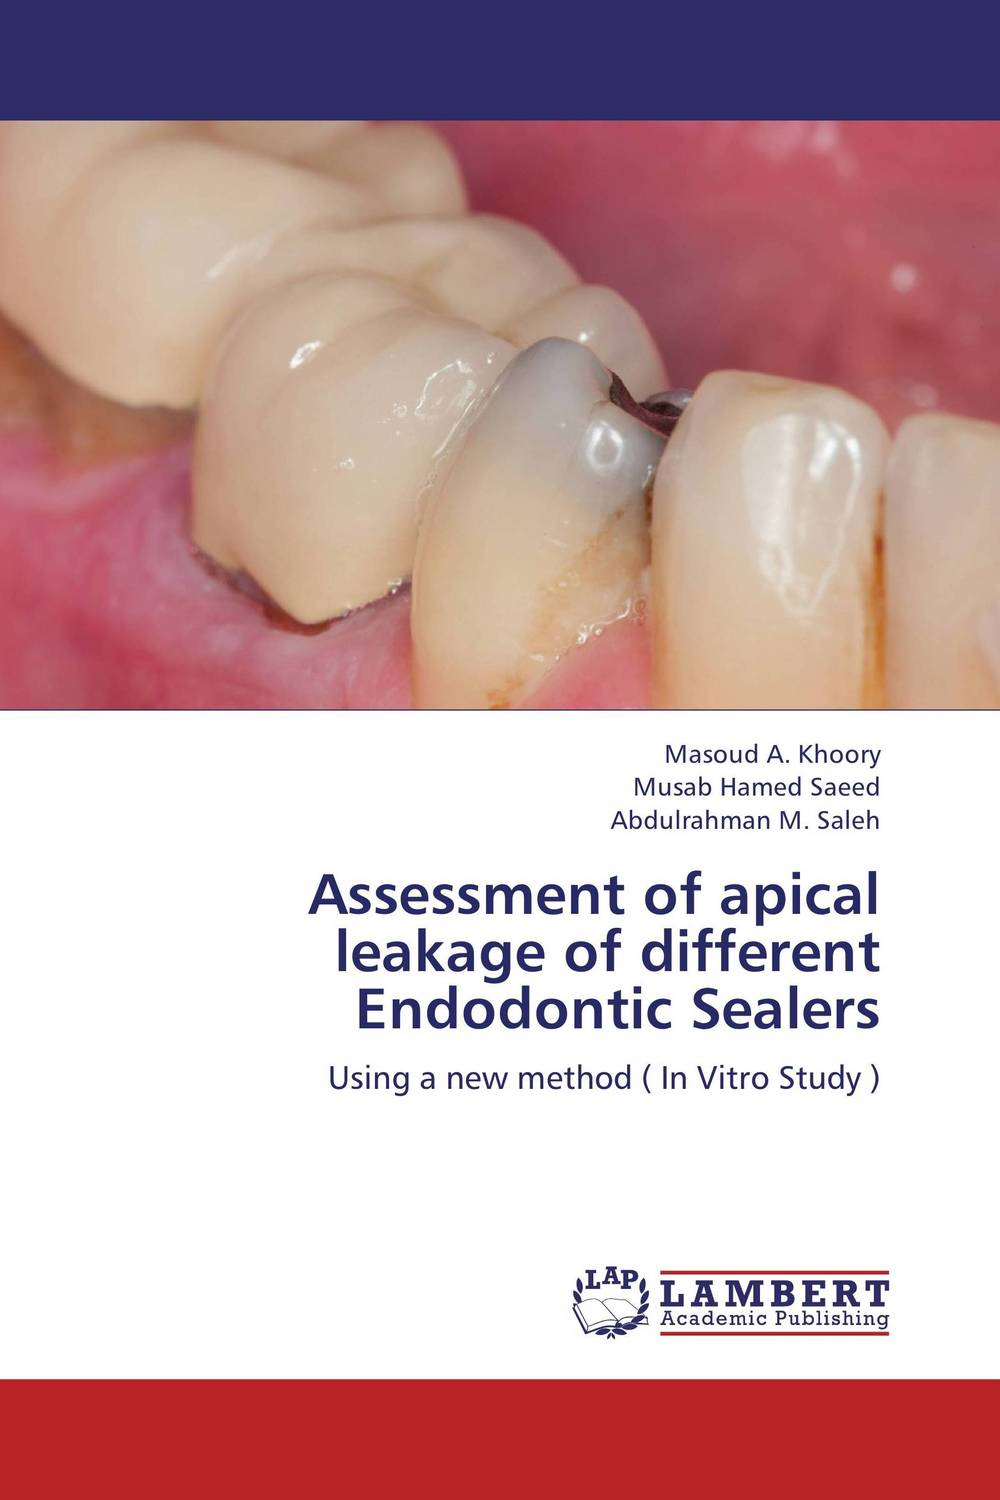 Assessment of apical leakage of different Endodontic Sealers the teeth with root canal students to practice root canal preparation and filling actually